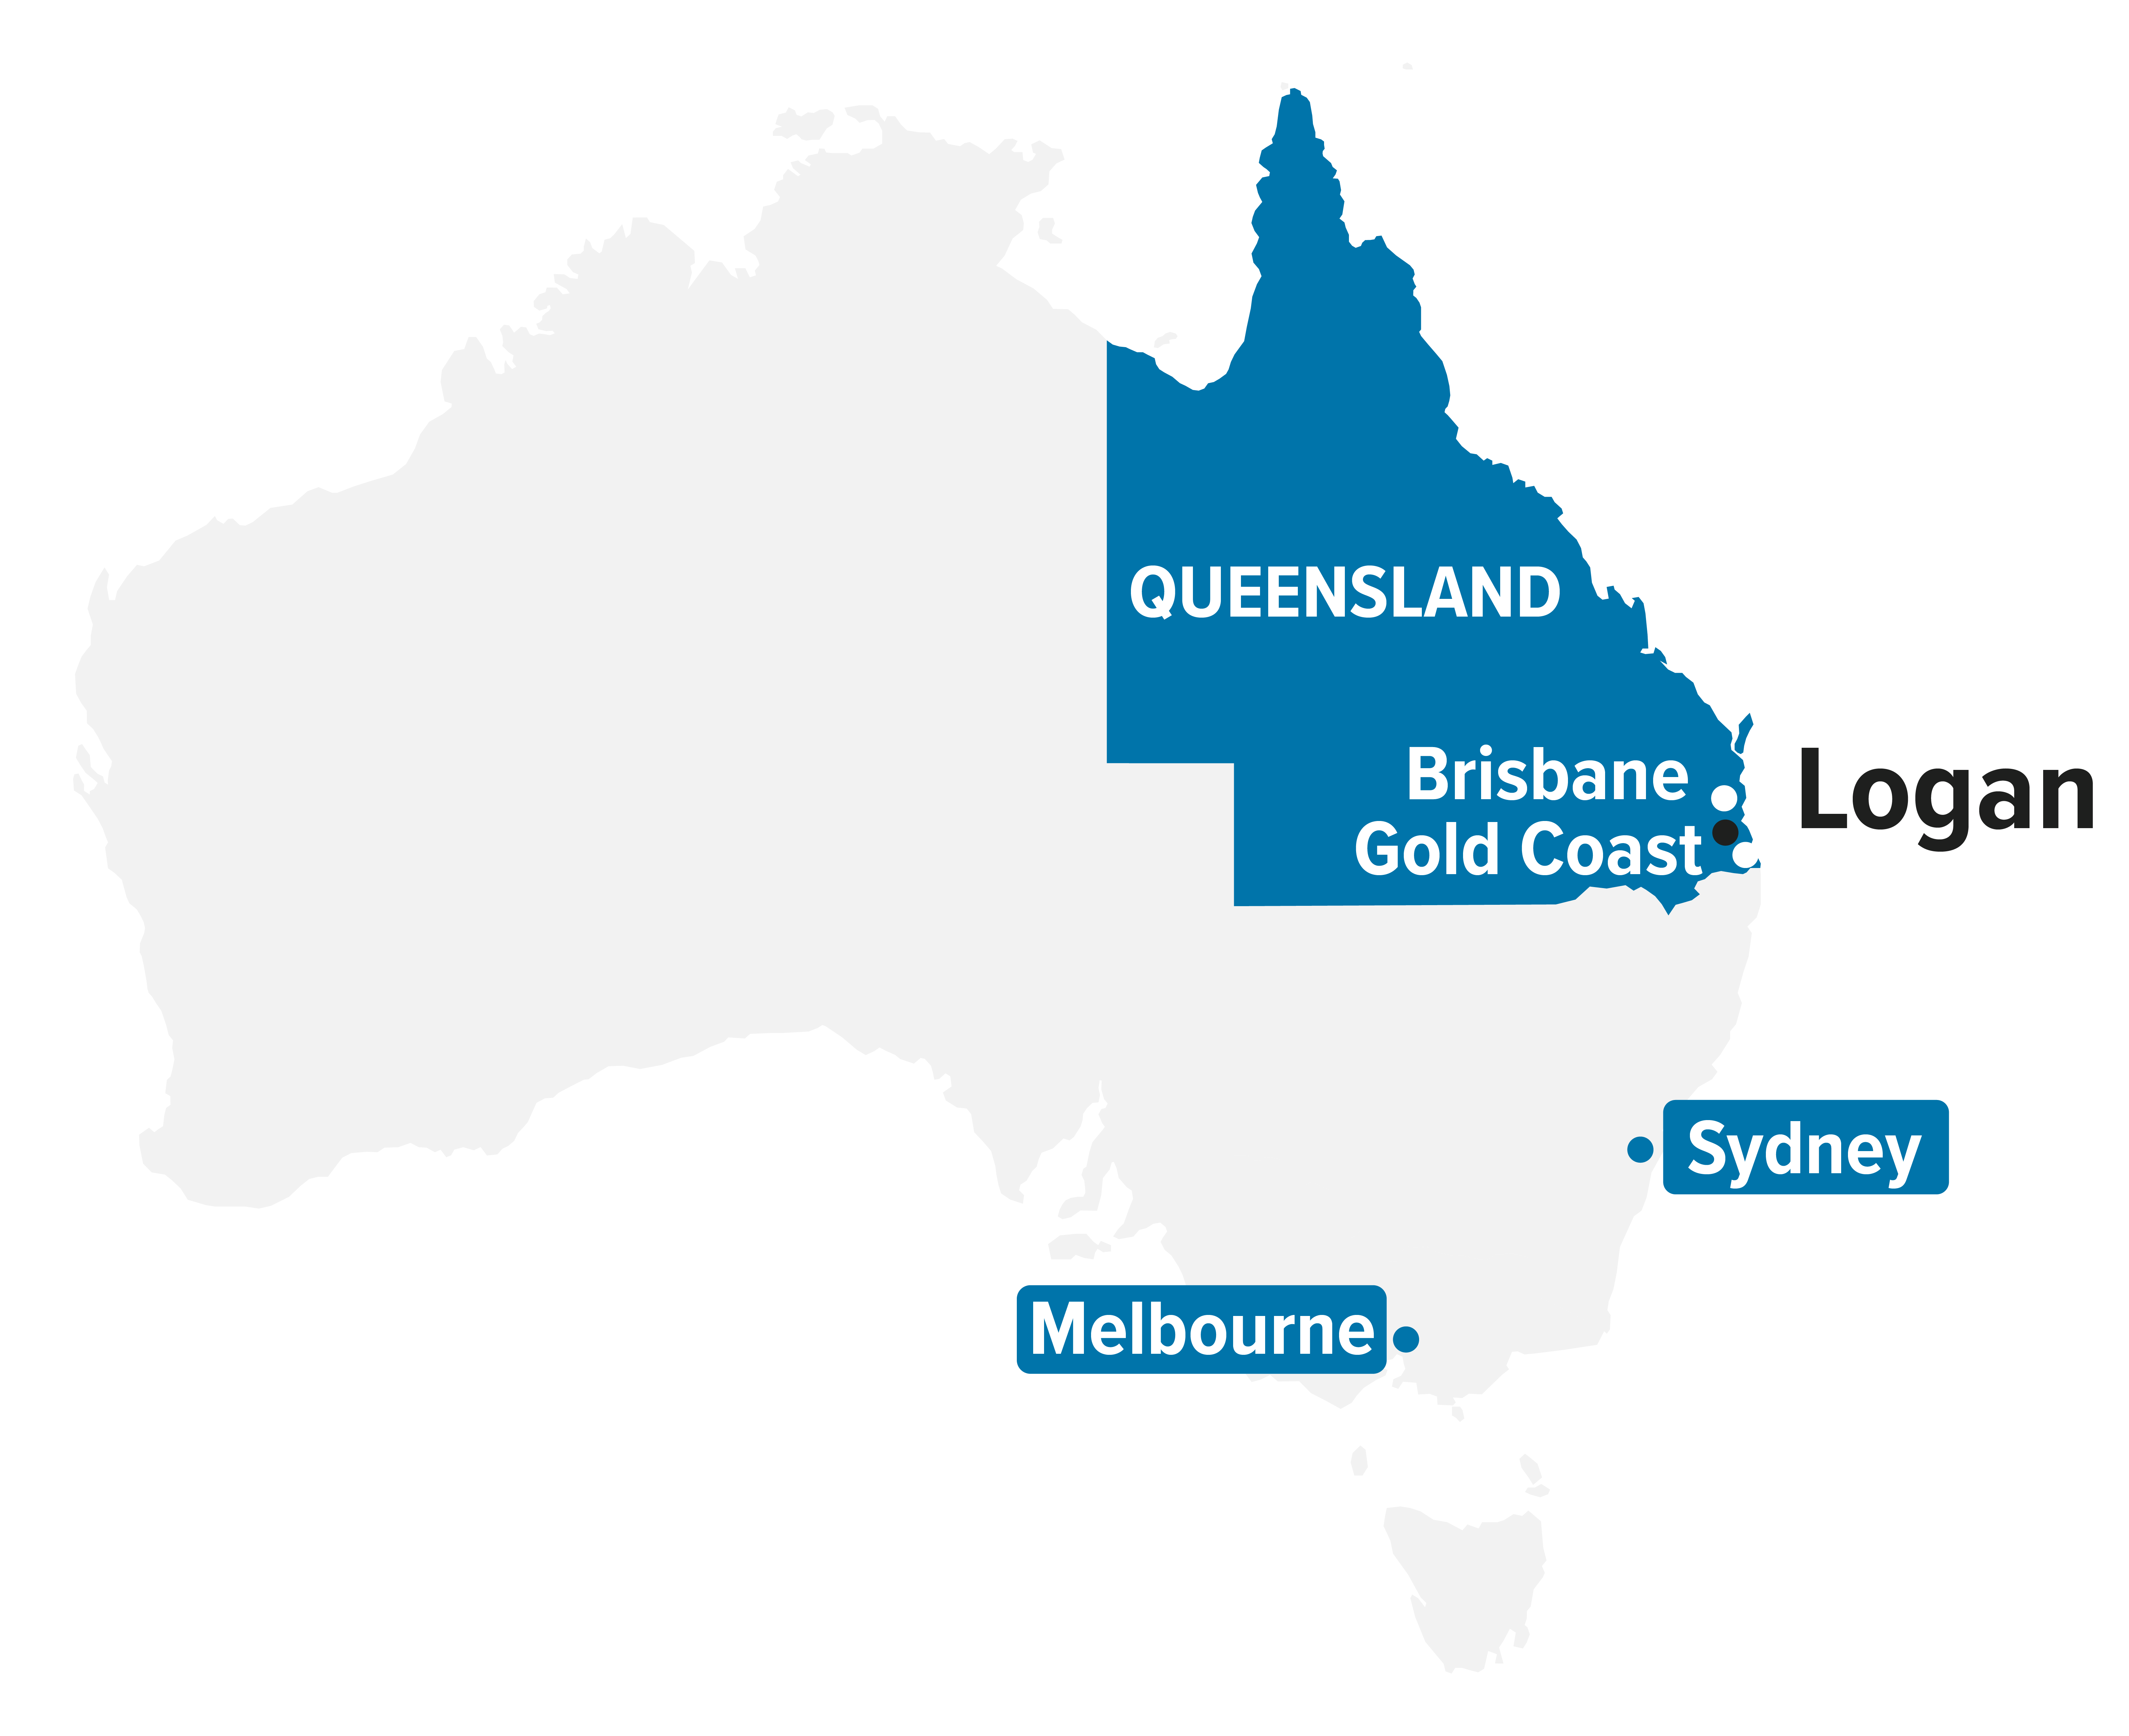 Map of Australia highlighting Queensland and position of Logan in South East corner